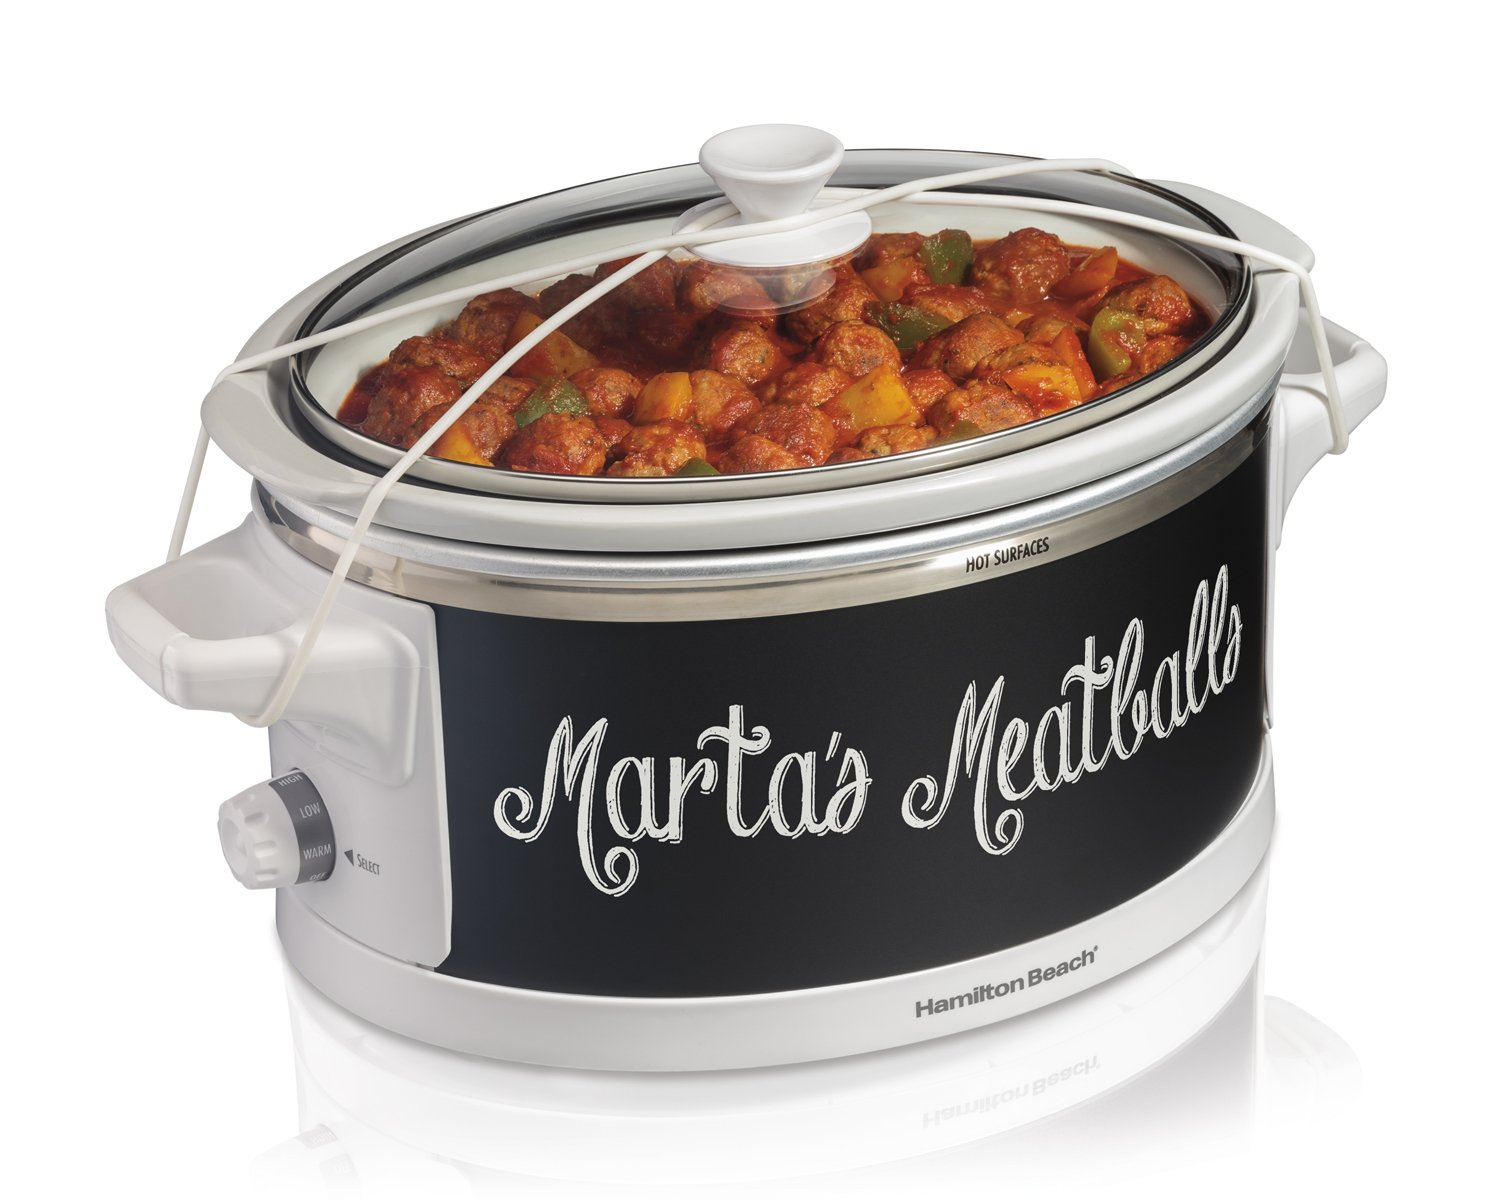 Hamilton Beach 33761 Wrap and Serve Slow Cooker, 6 Quart - White